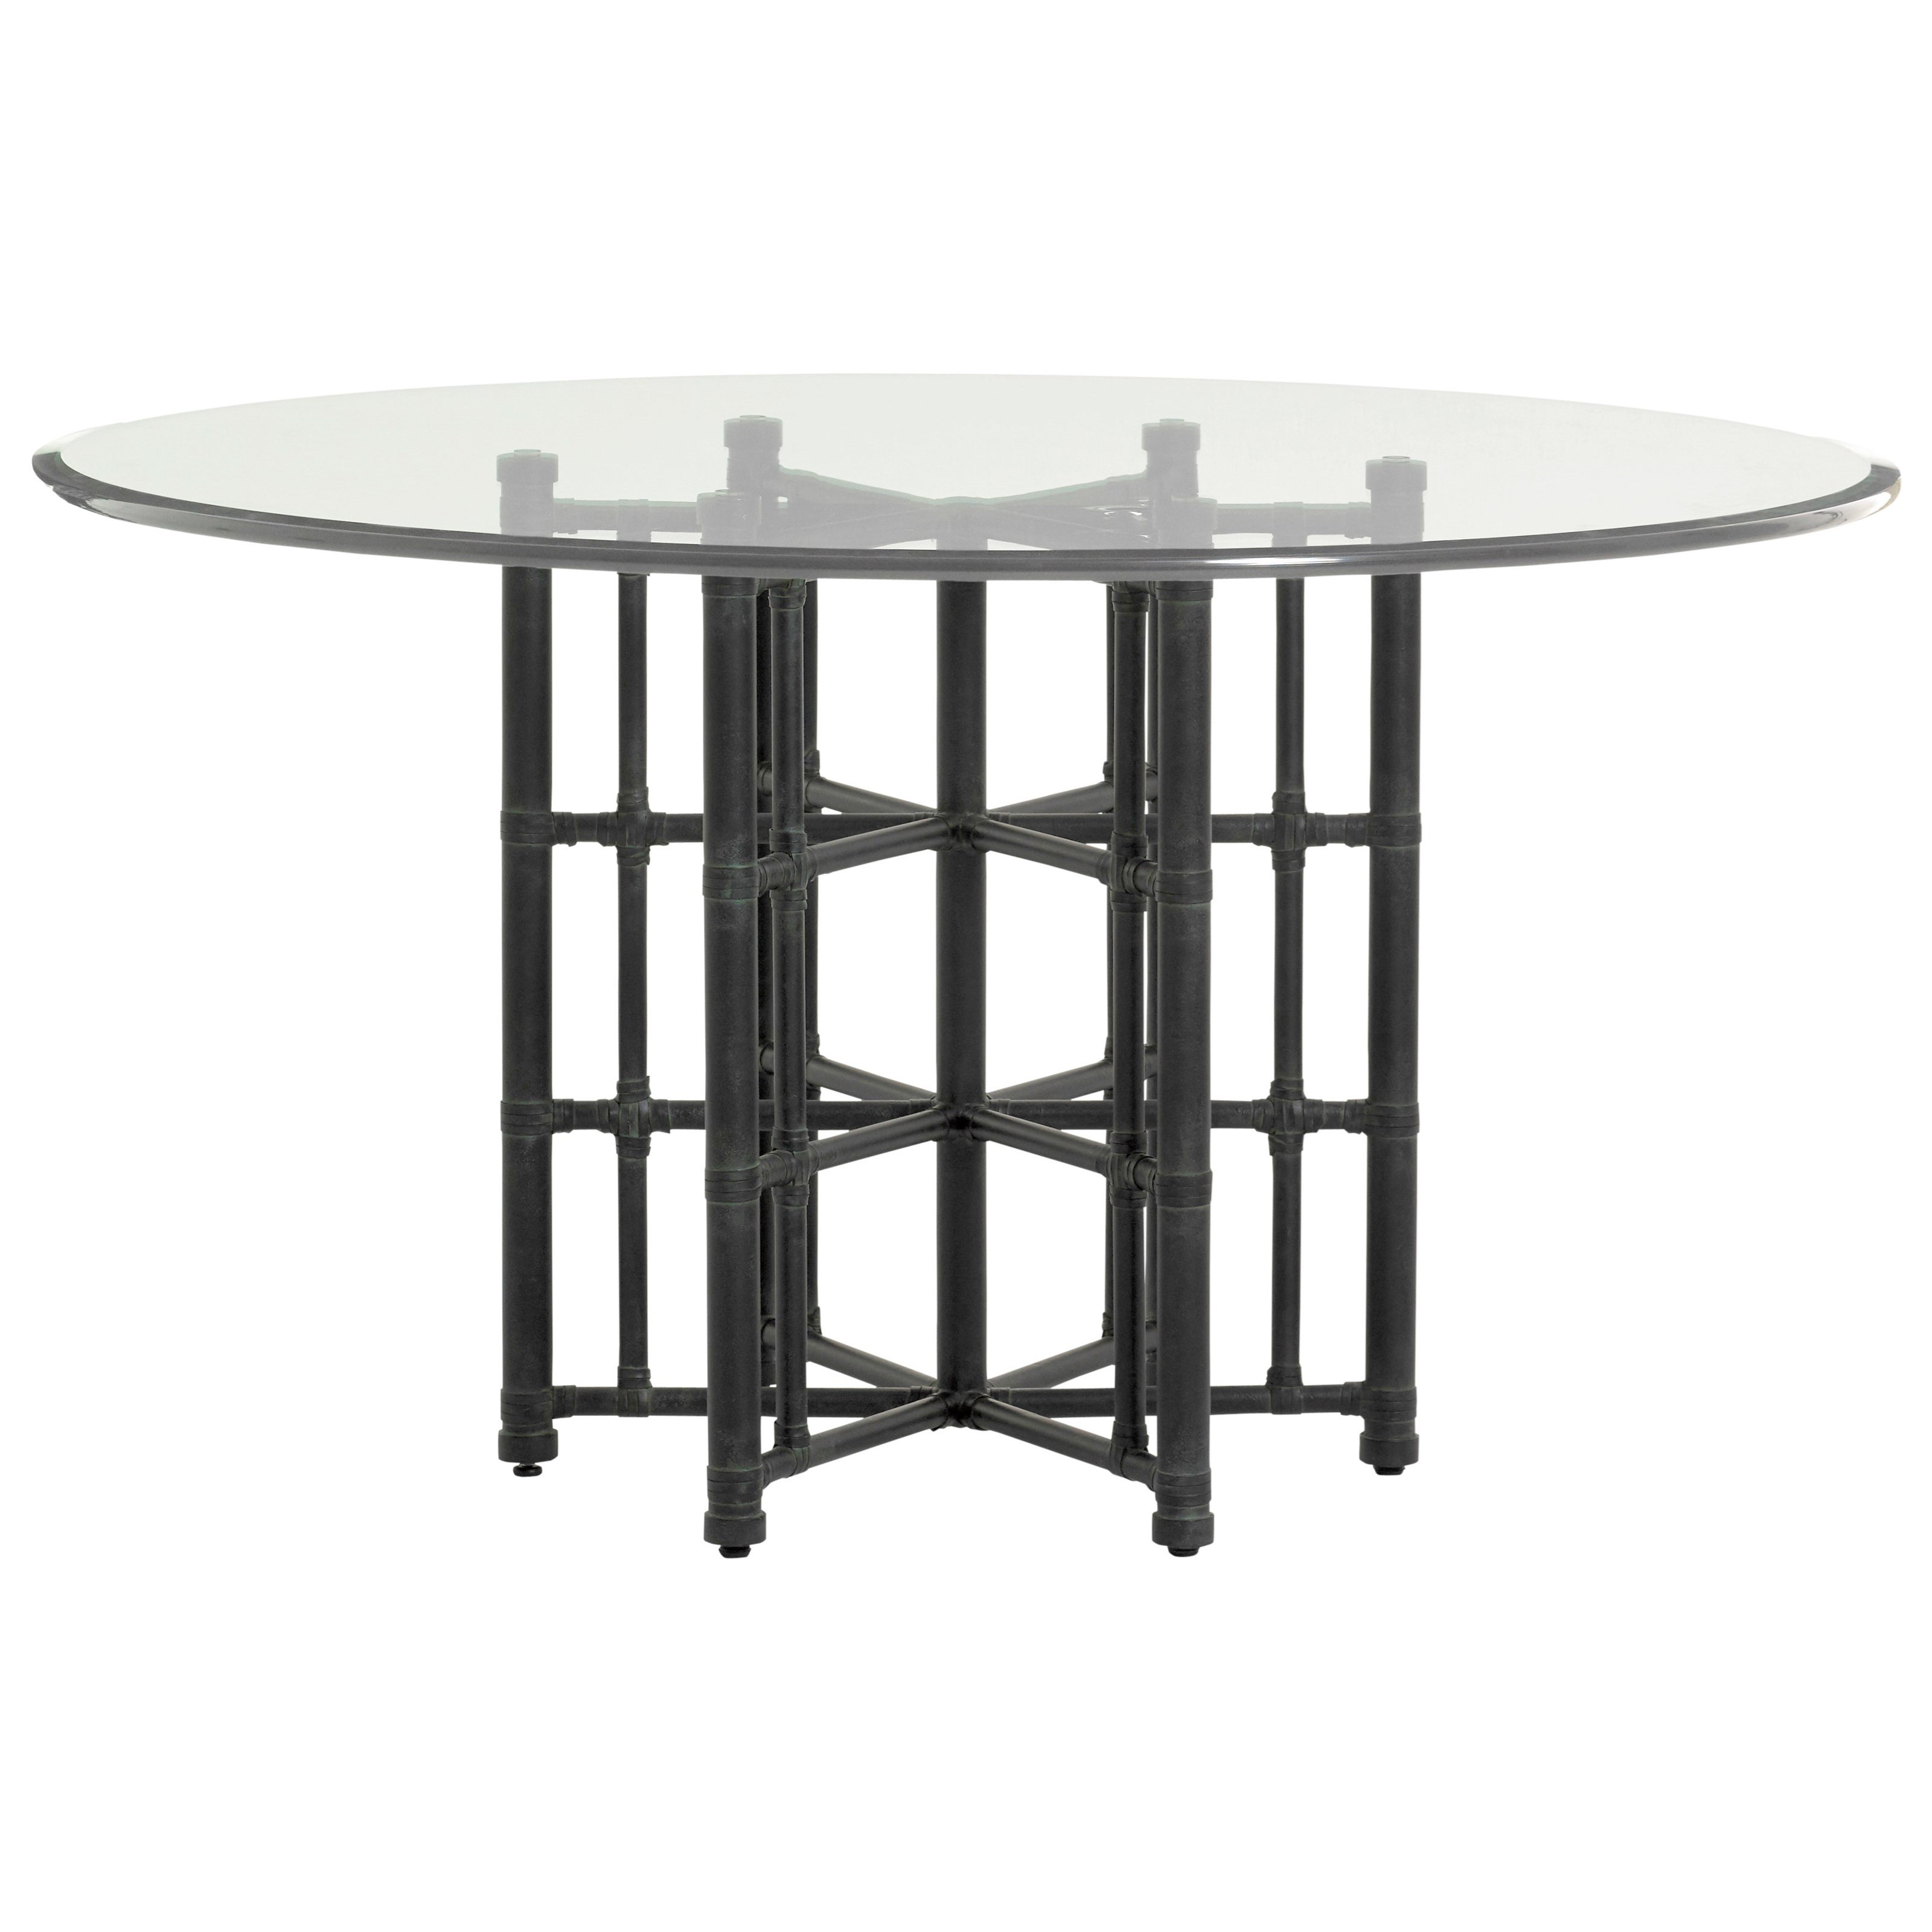 "Twin Palms Stellaris Dining Table 54"" Glass Top by Tommy Bahama Home at Baer's Furniture"